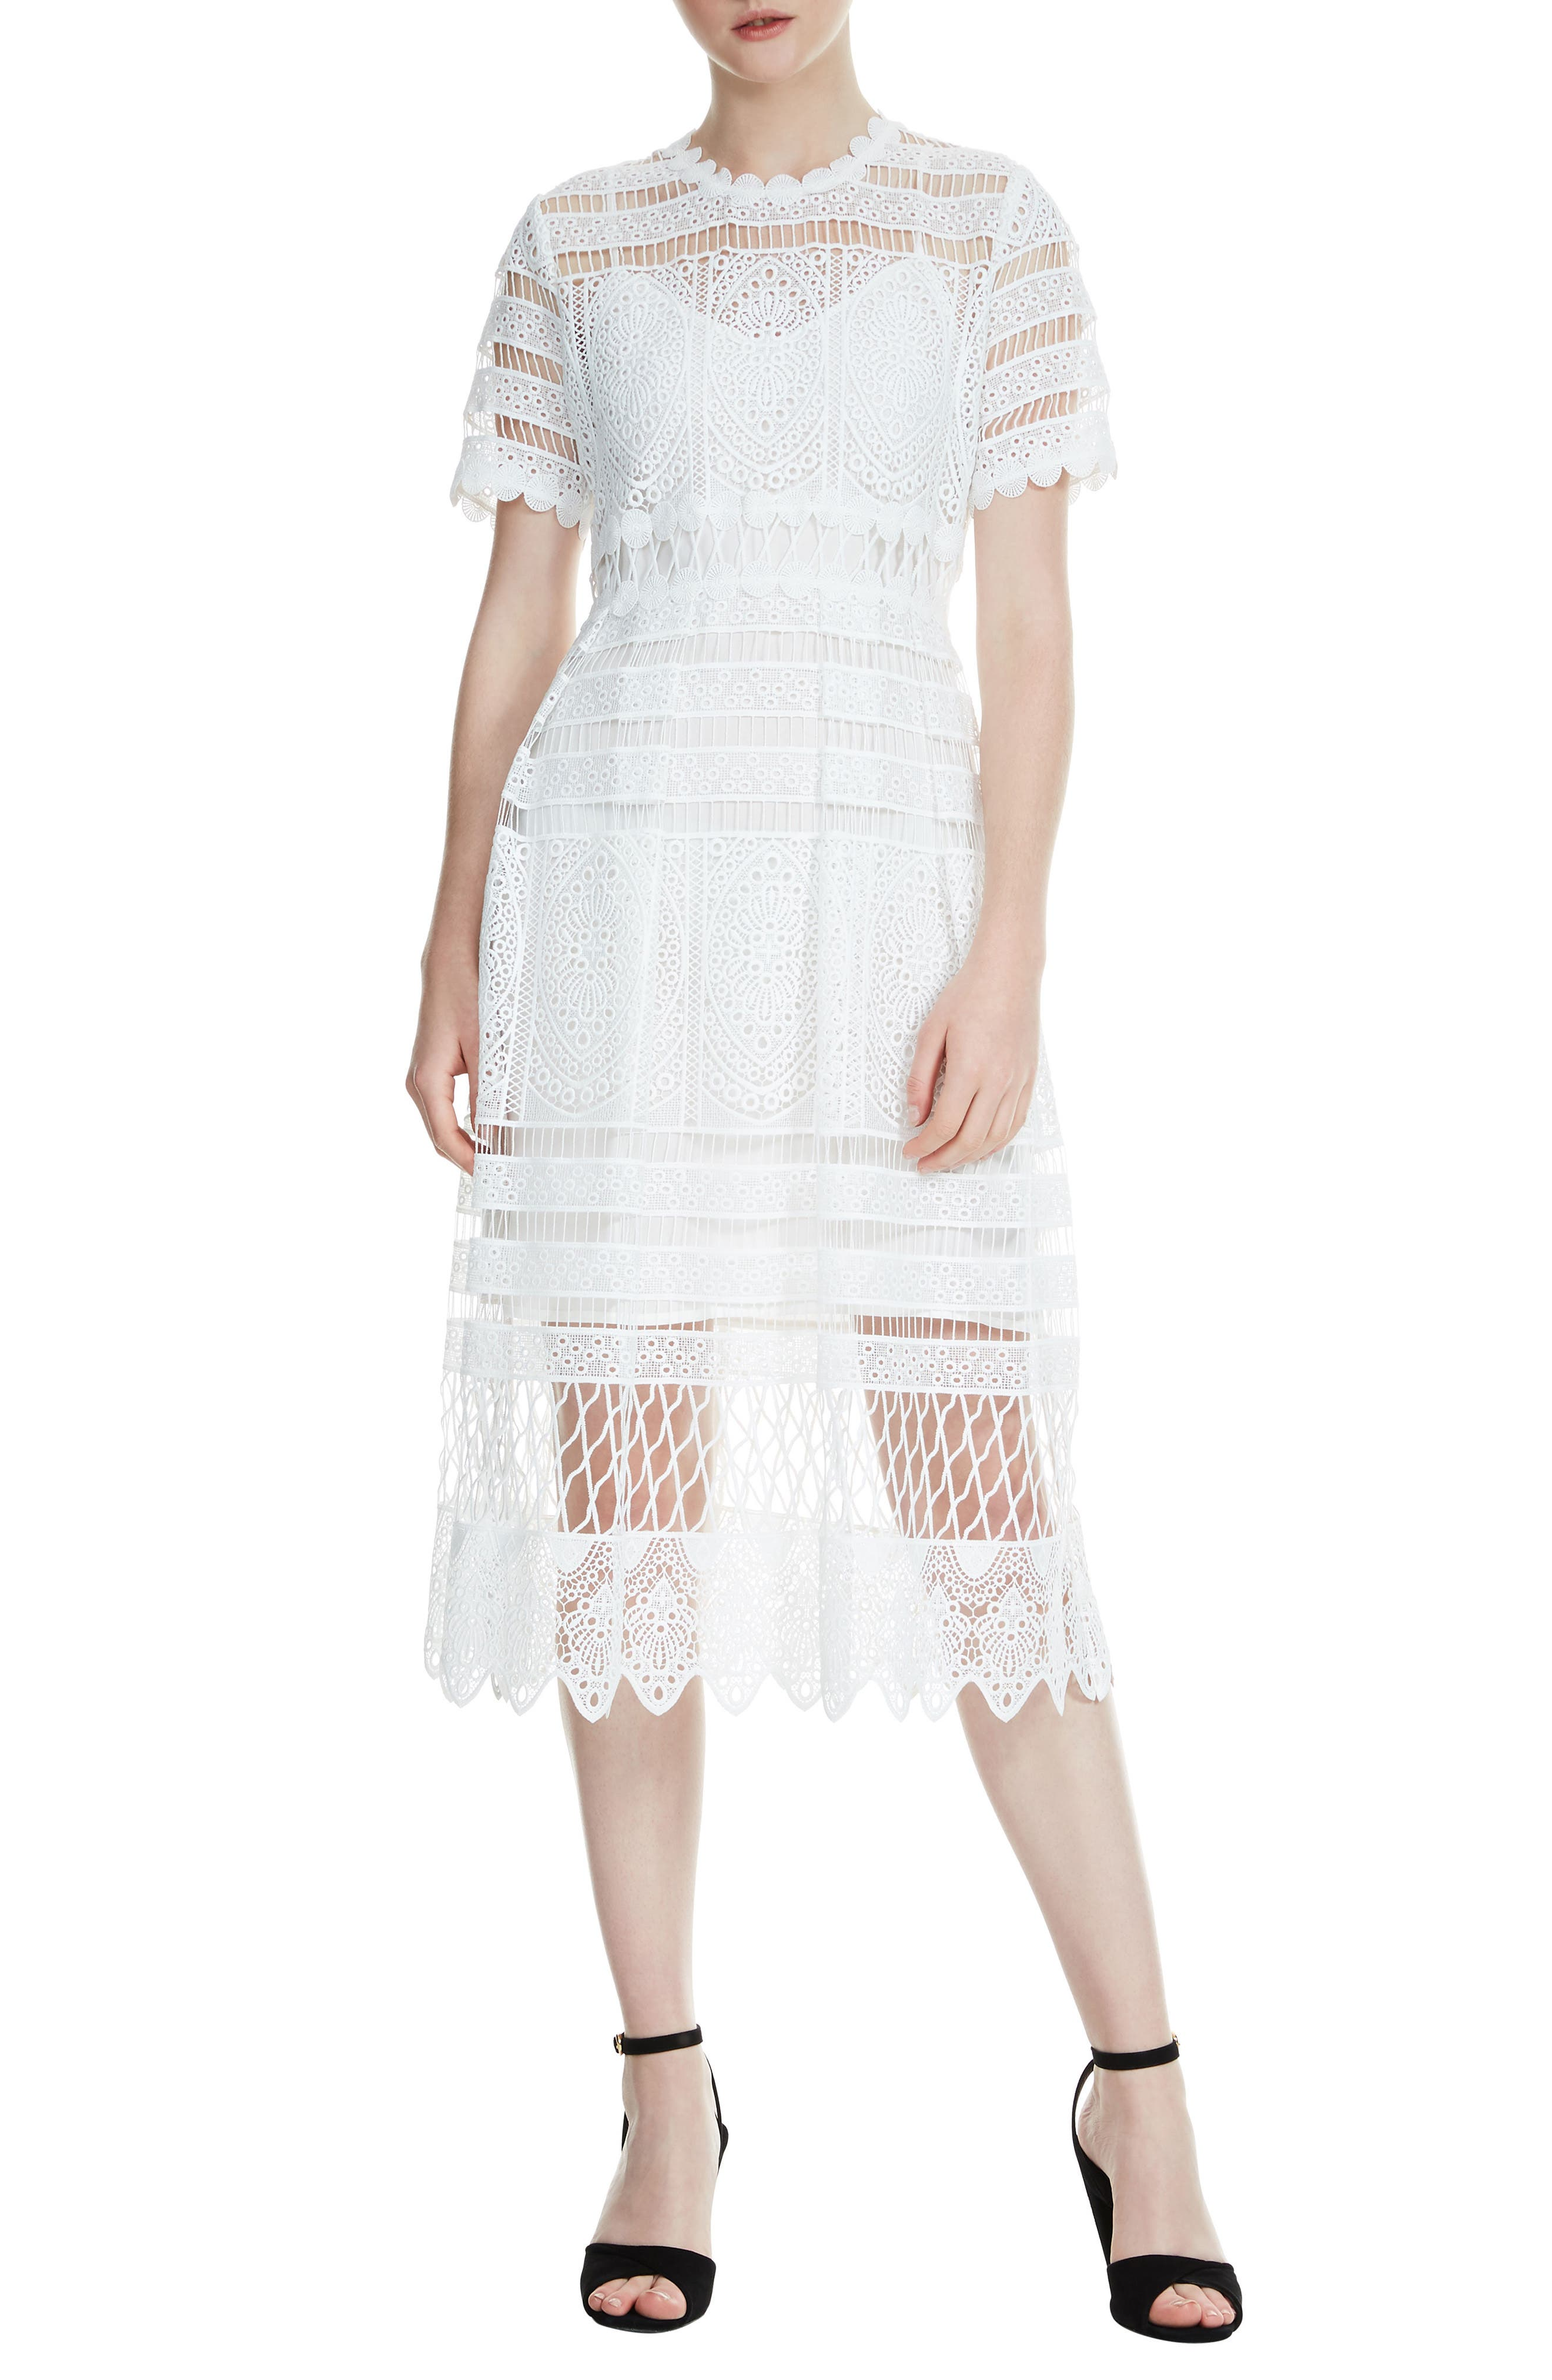 Cheap Price Low Shipping Fee Outlet Supply Maje Woman Floral Guipure Lace Top White Size 2 Maje Outlet Footlocker Pictures Low Price For Sale Enjoy WfFG8NQyg